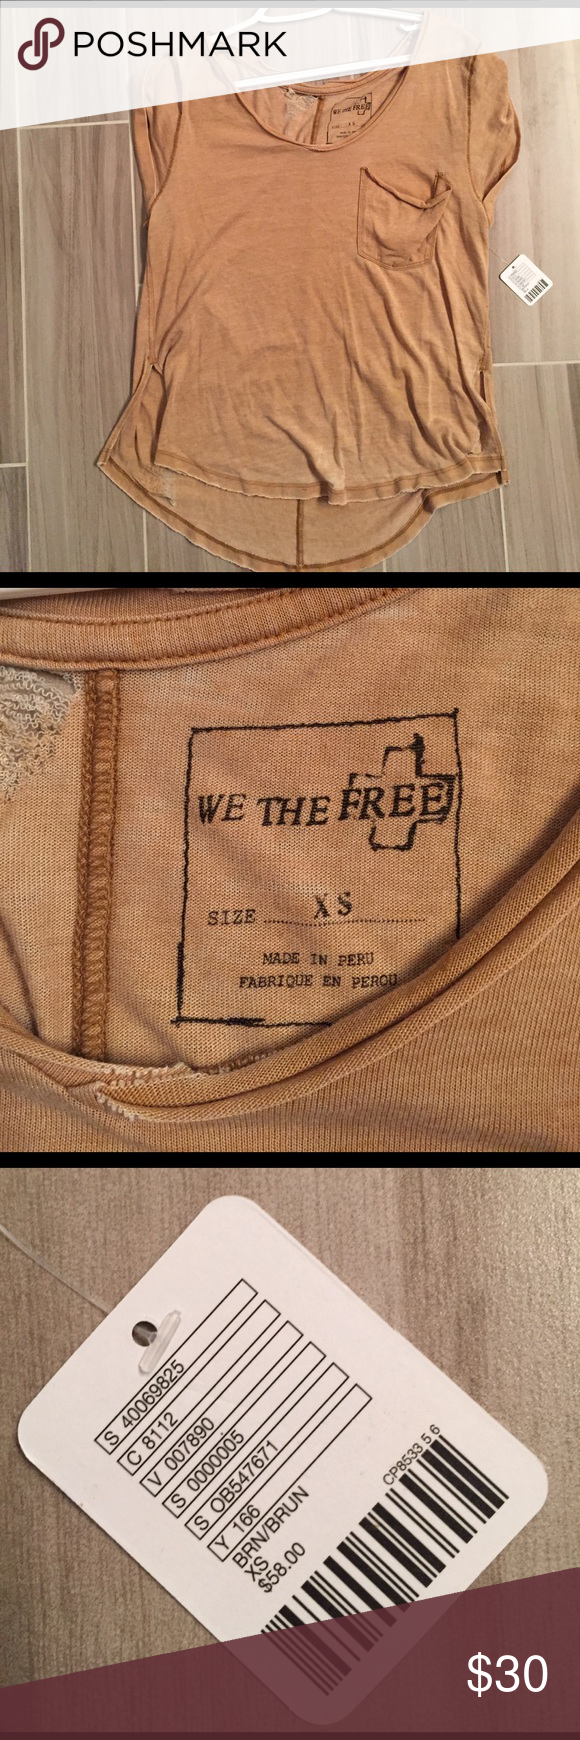 NWT We The Free, Free People Brittney Tee Super soft, distressed Brittney Tee from Free People. NWT, size XS, color is a dark beige to light brown color. Free People Tops Tees - Short Sleeve